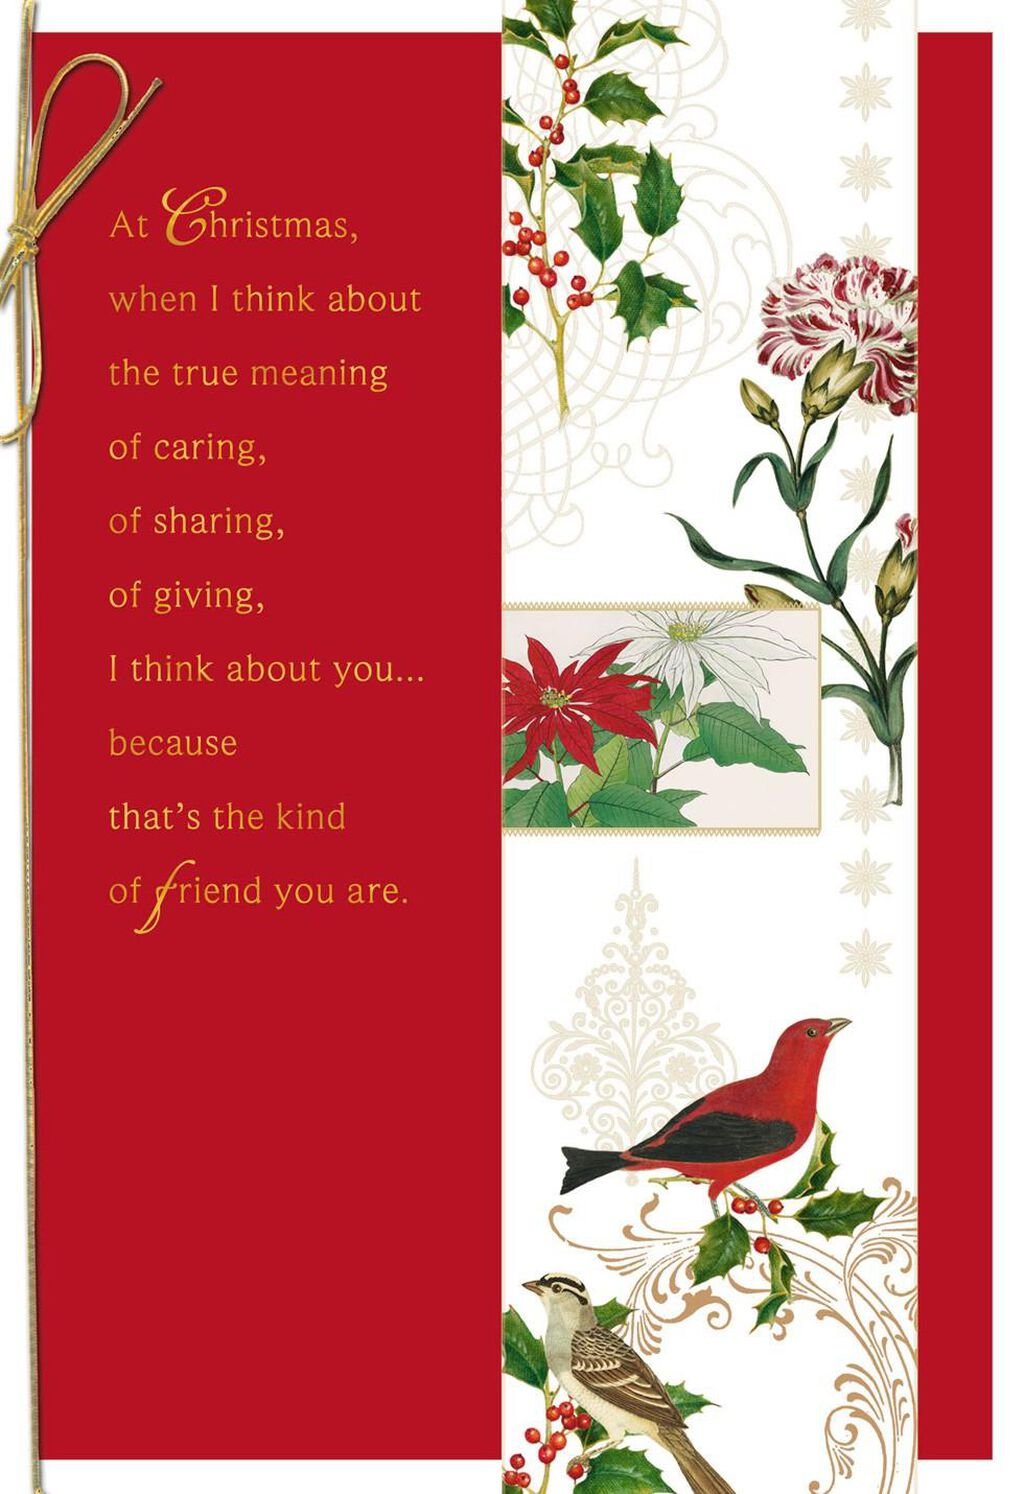 Christmas card images for friends richiejr blooms and birds for a special friend christmas card greeting m4hsunfo